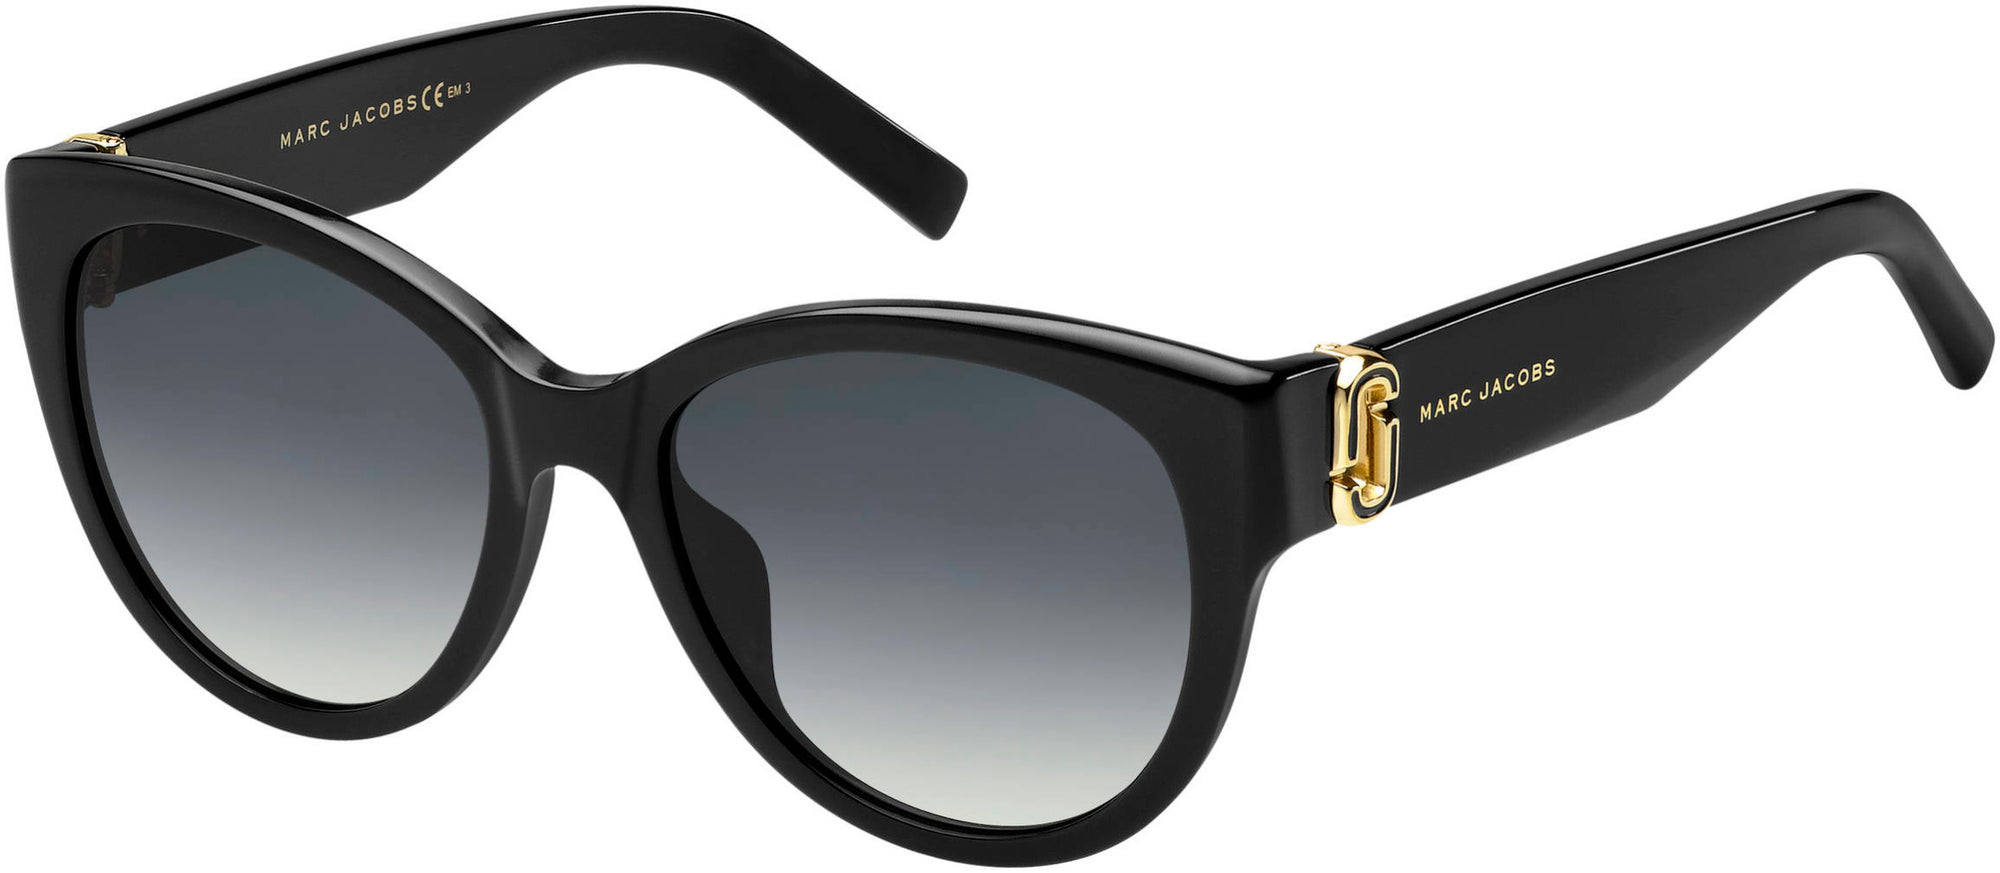 Marc Jacobs Marc 181/S Oval Modified Sunglasses 0807-0807  Black (9O Dark Gray Gradient)